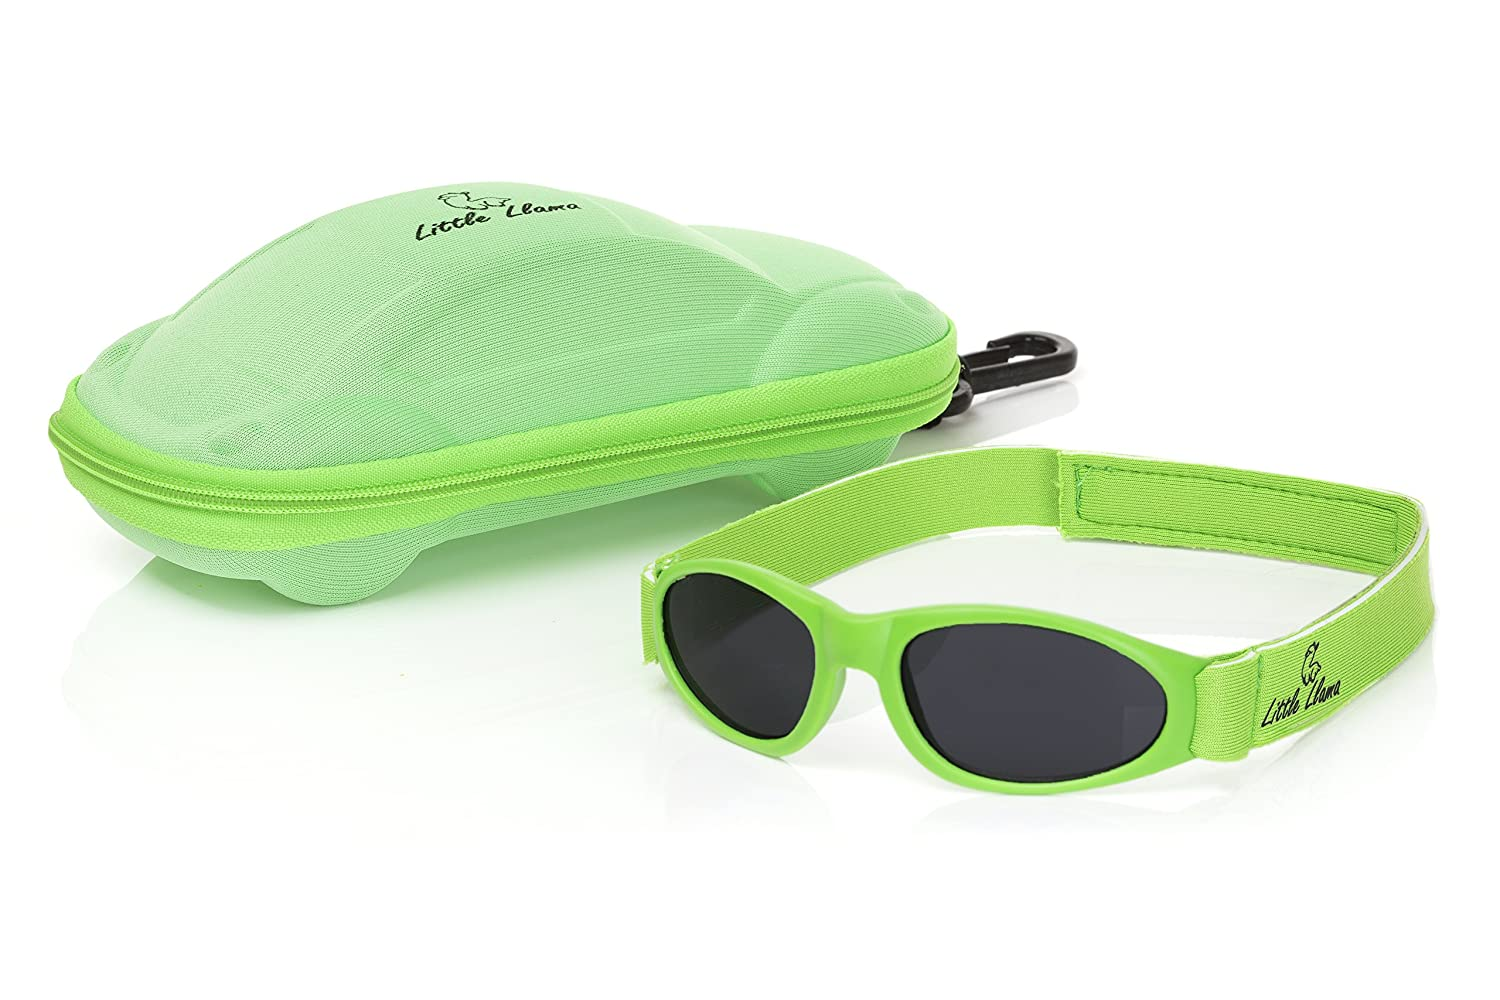 with Adjustable Strap and Case 0 to 2 Years Little Llama Infant Sunglasses Green UVA//UVB Protection